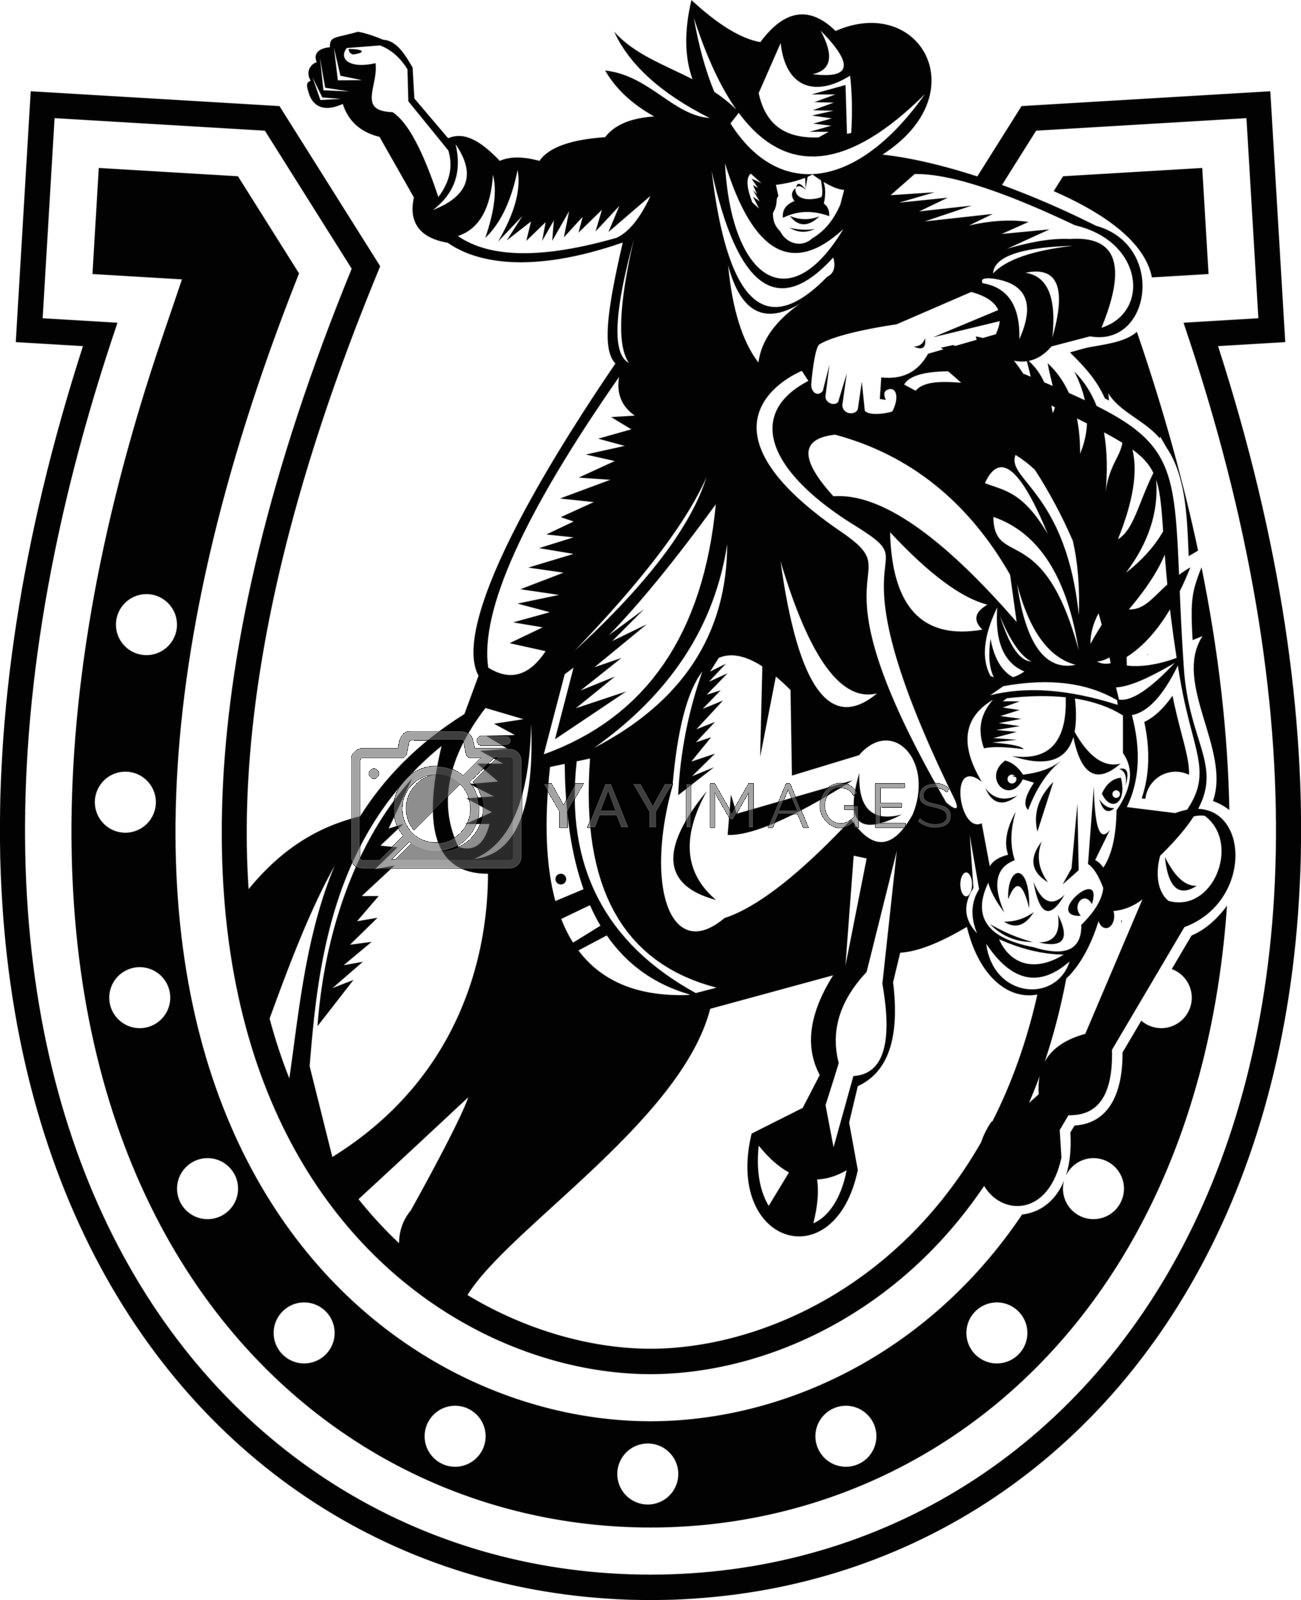 Retro woodcut style illustration of a rodeo cowboy on horseback riding horse jumping over horseshoe on isolated background done in black and white.